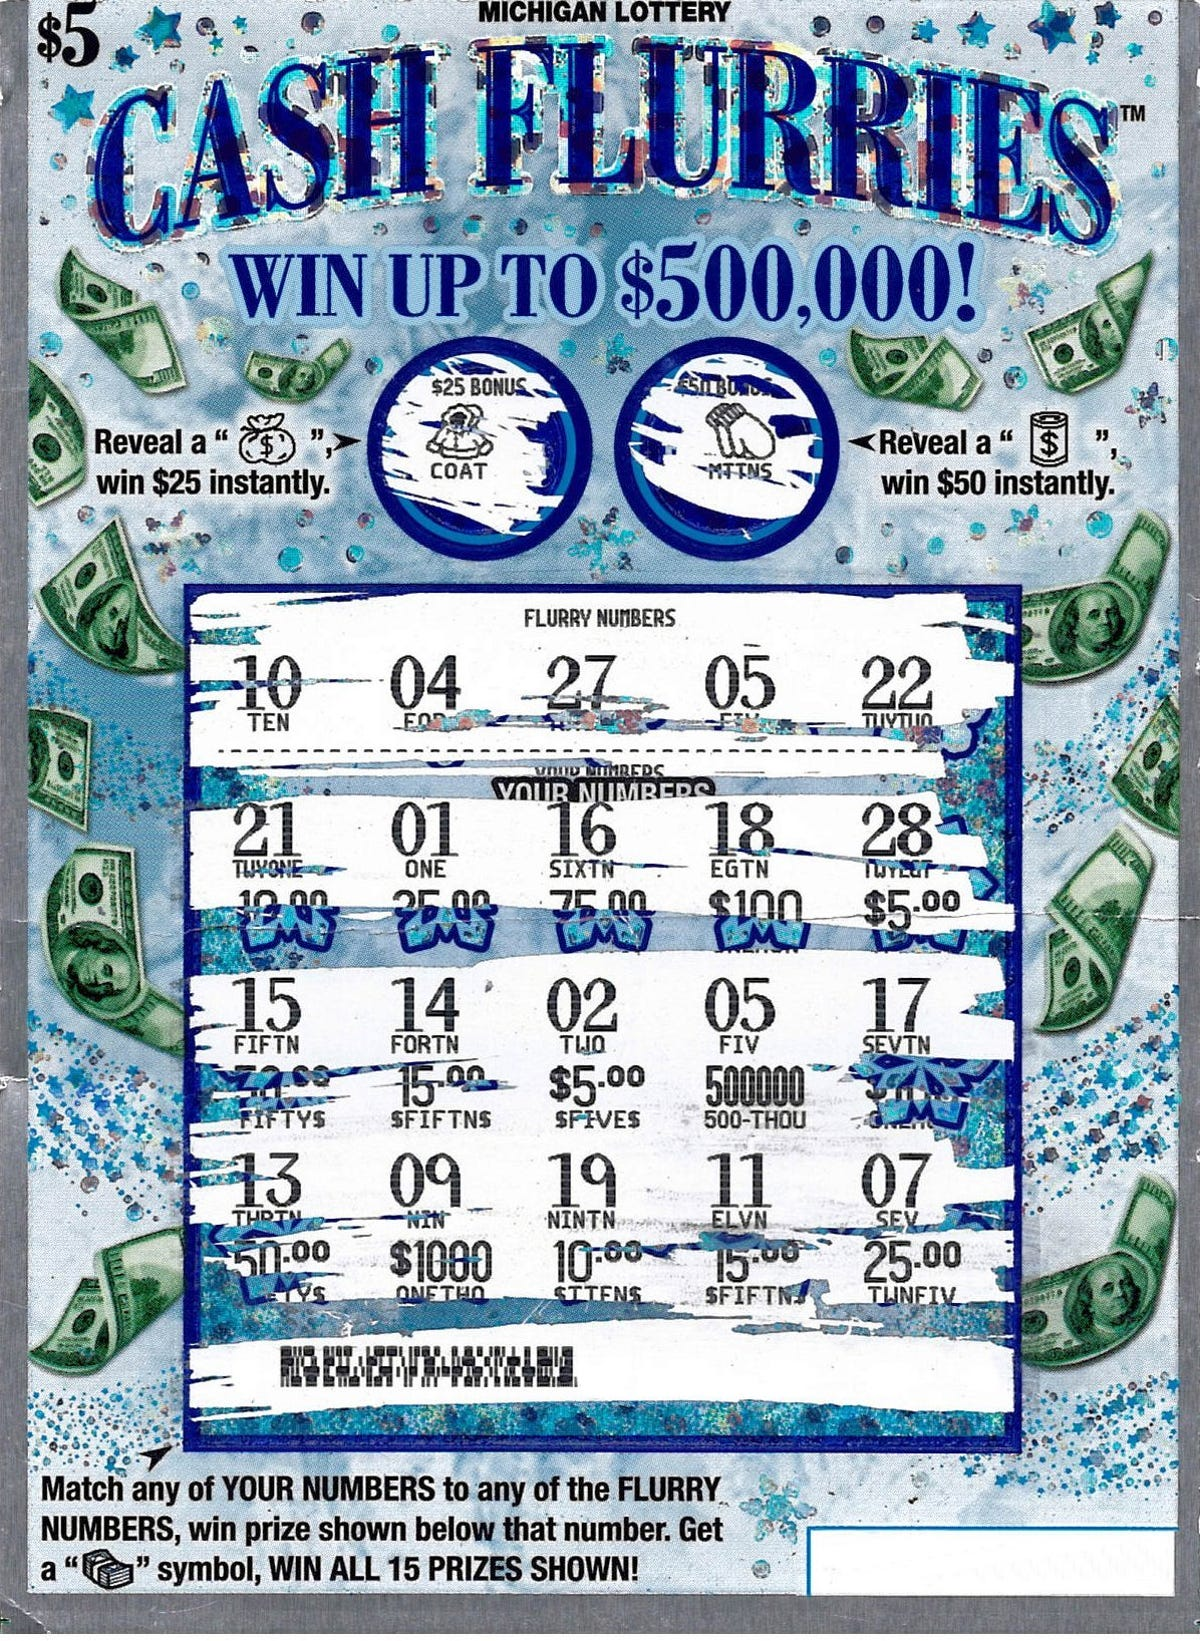 Michigan Lottery: Macomb Co  man wins $500K on instant ticket